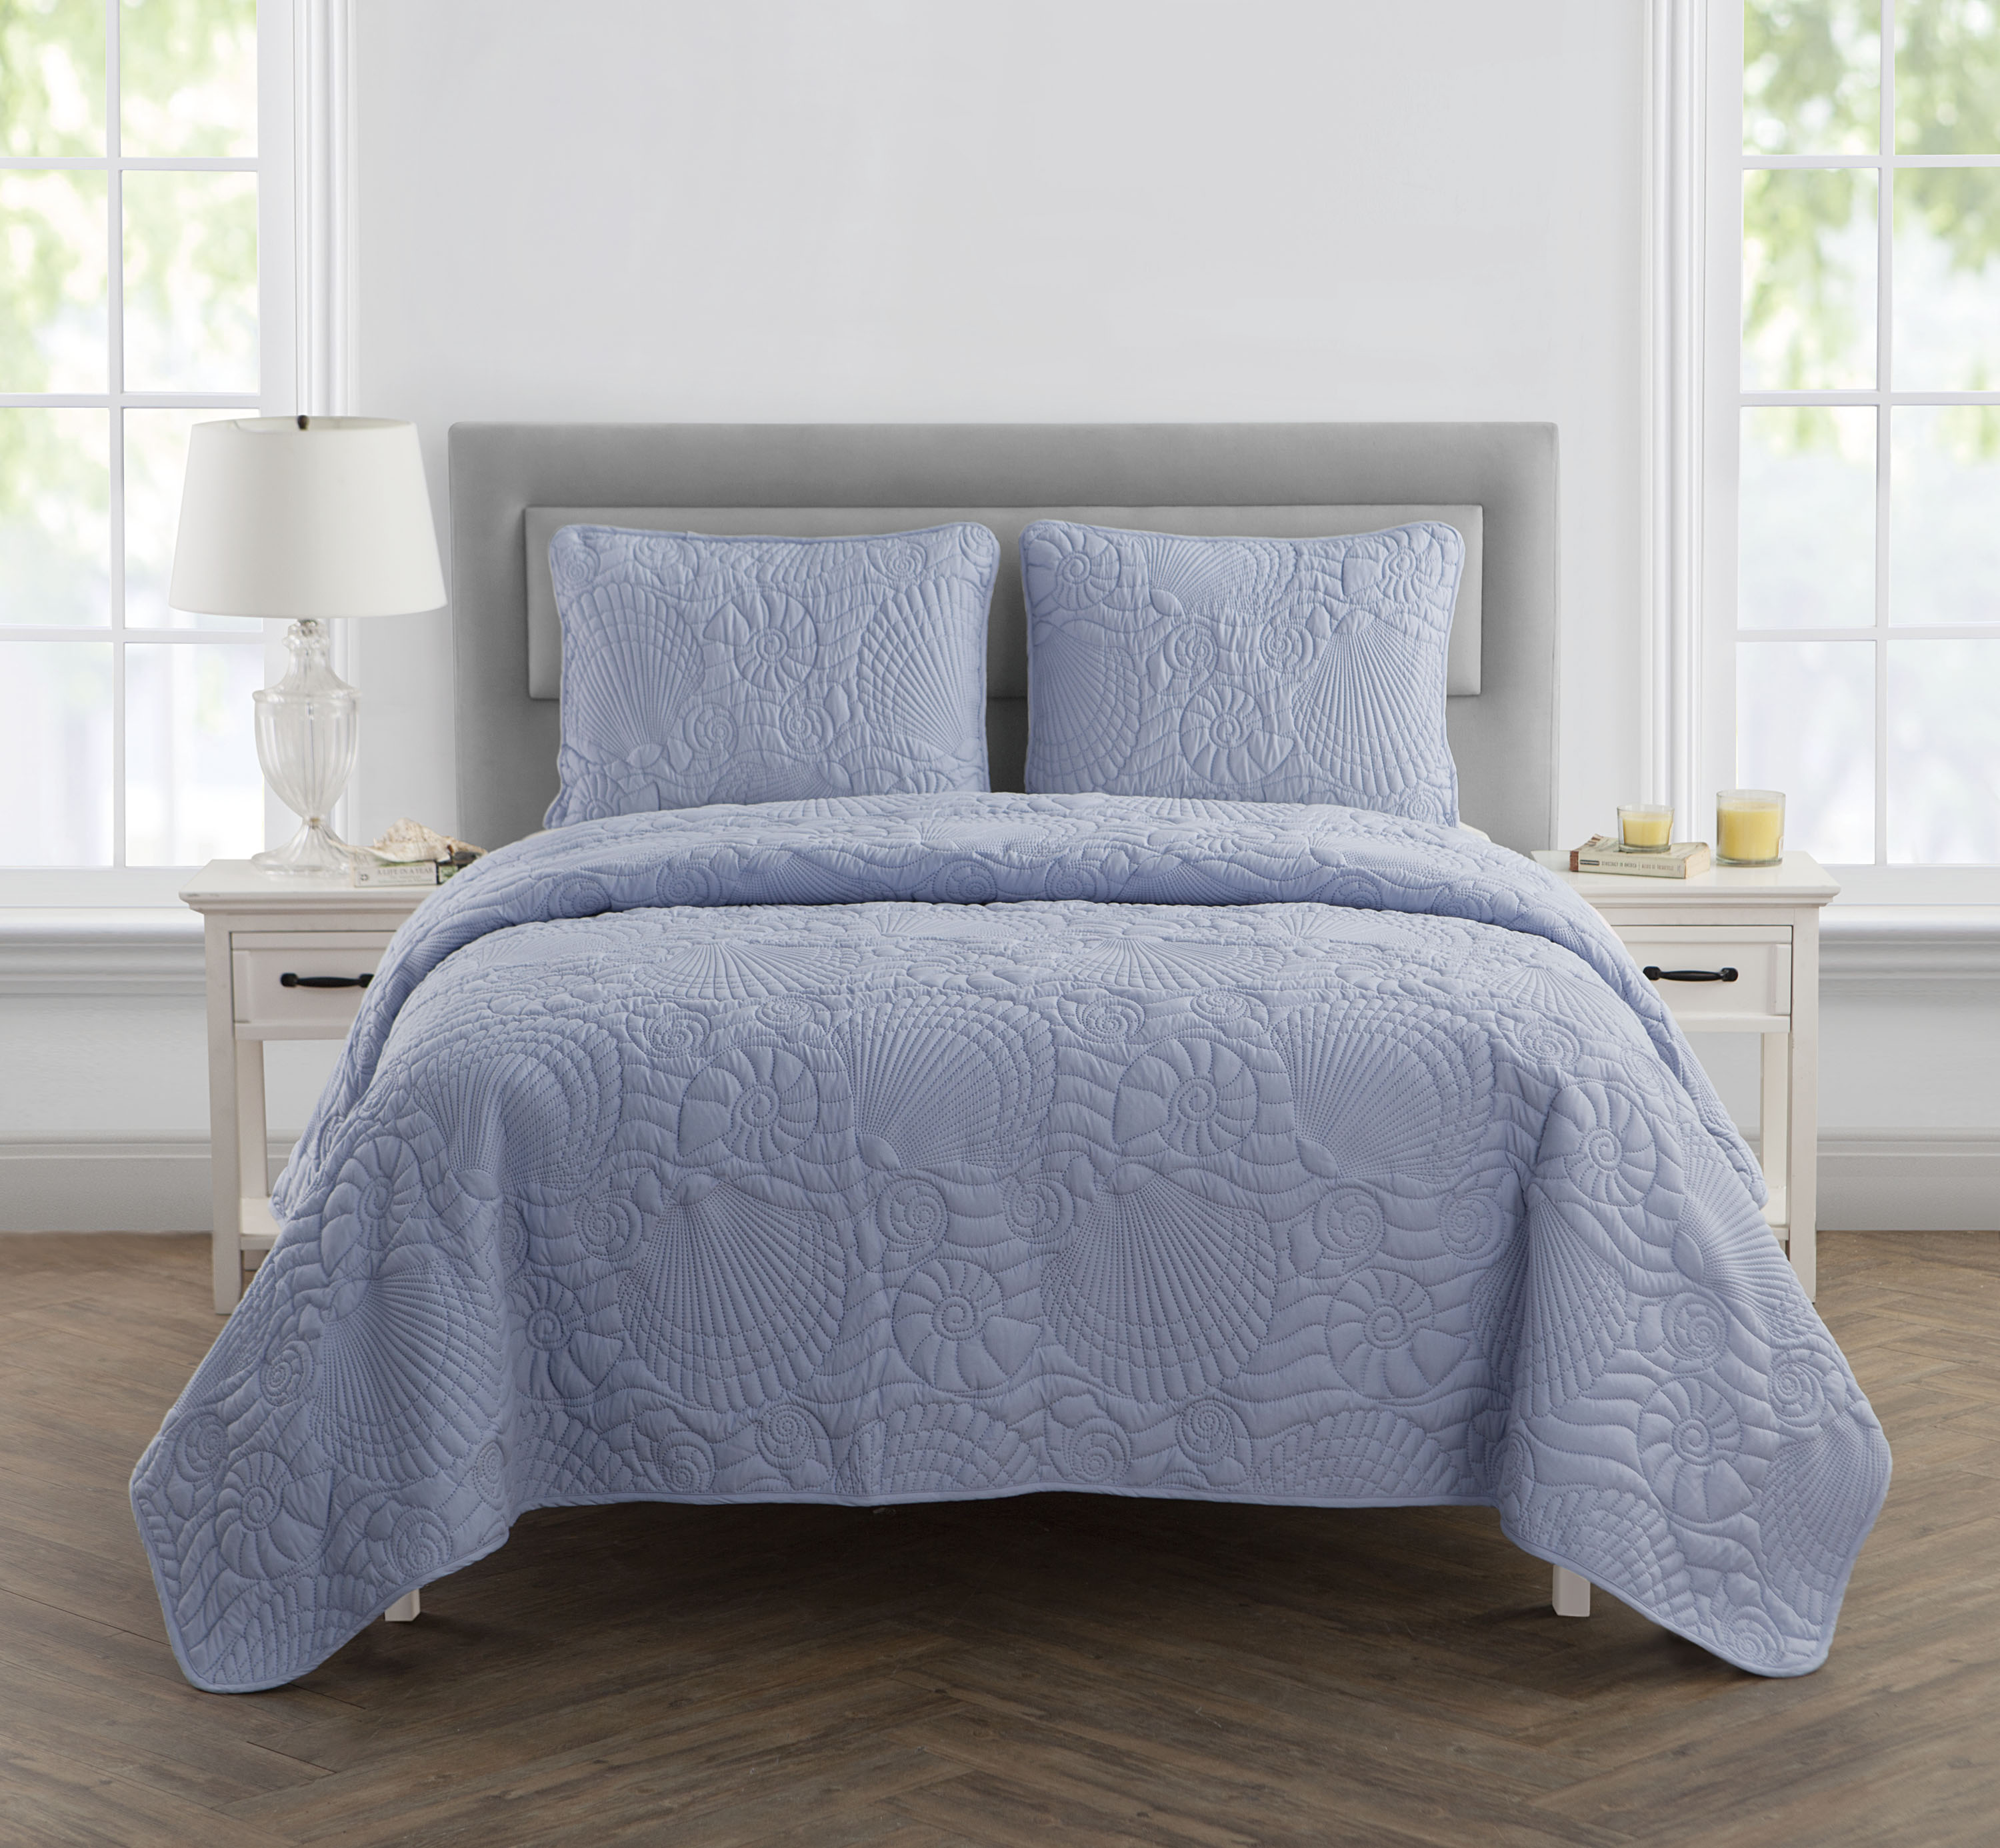 VCNY Home Shells Coastal-Inspired 2 3 Piece Embossed Bedding Quilt Set, Multiple Colors... by VCNY Home